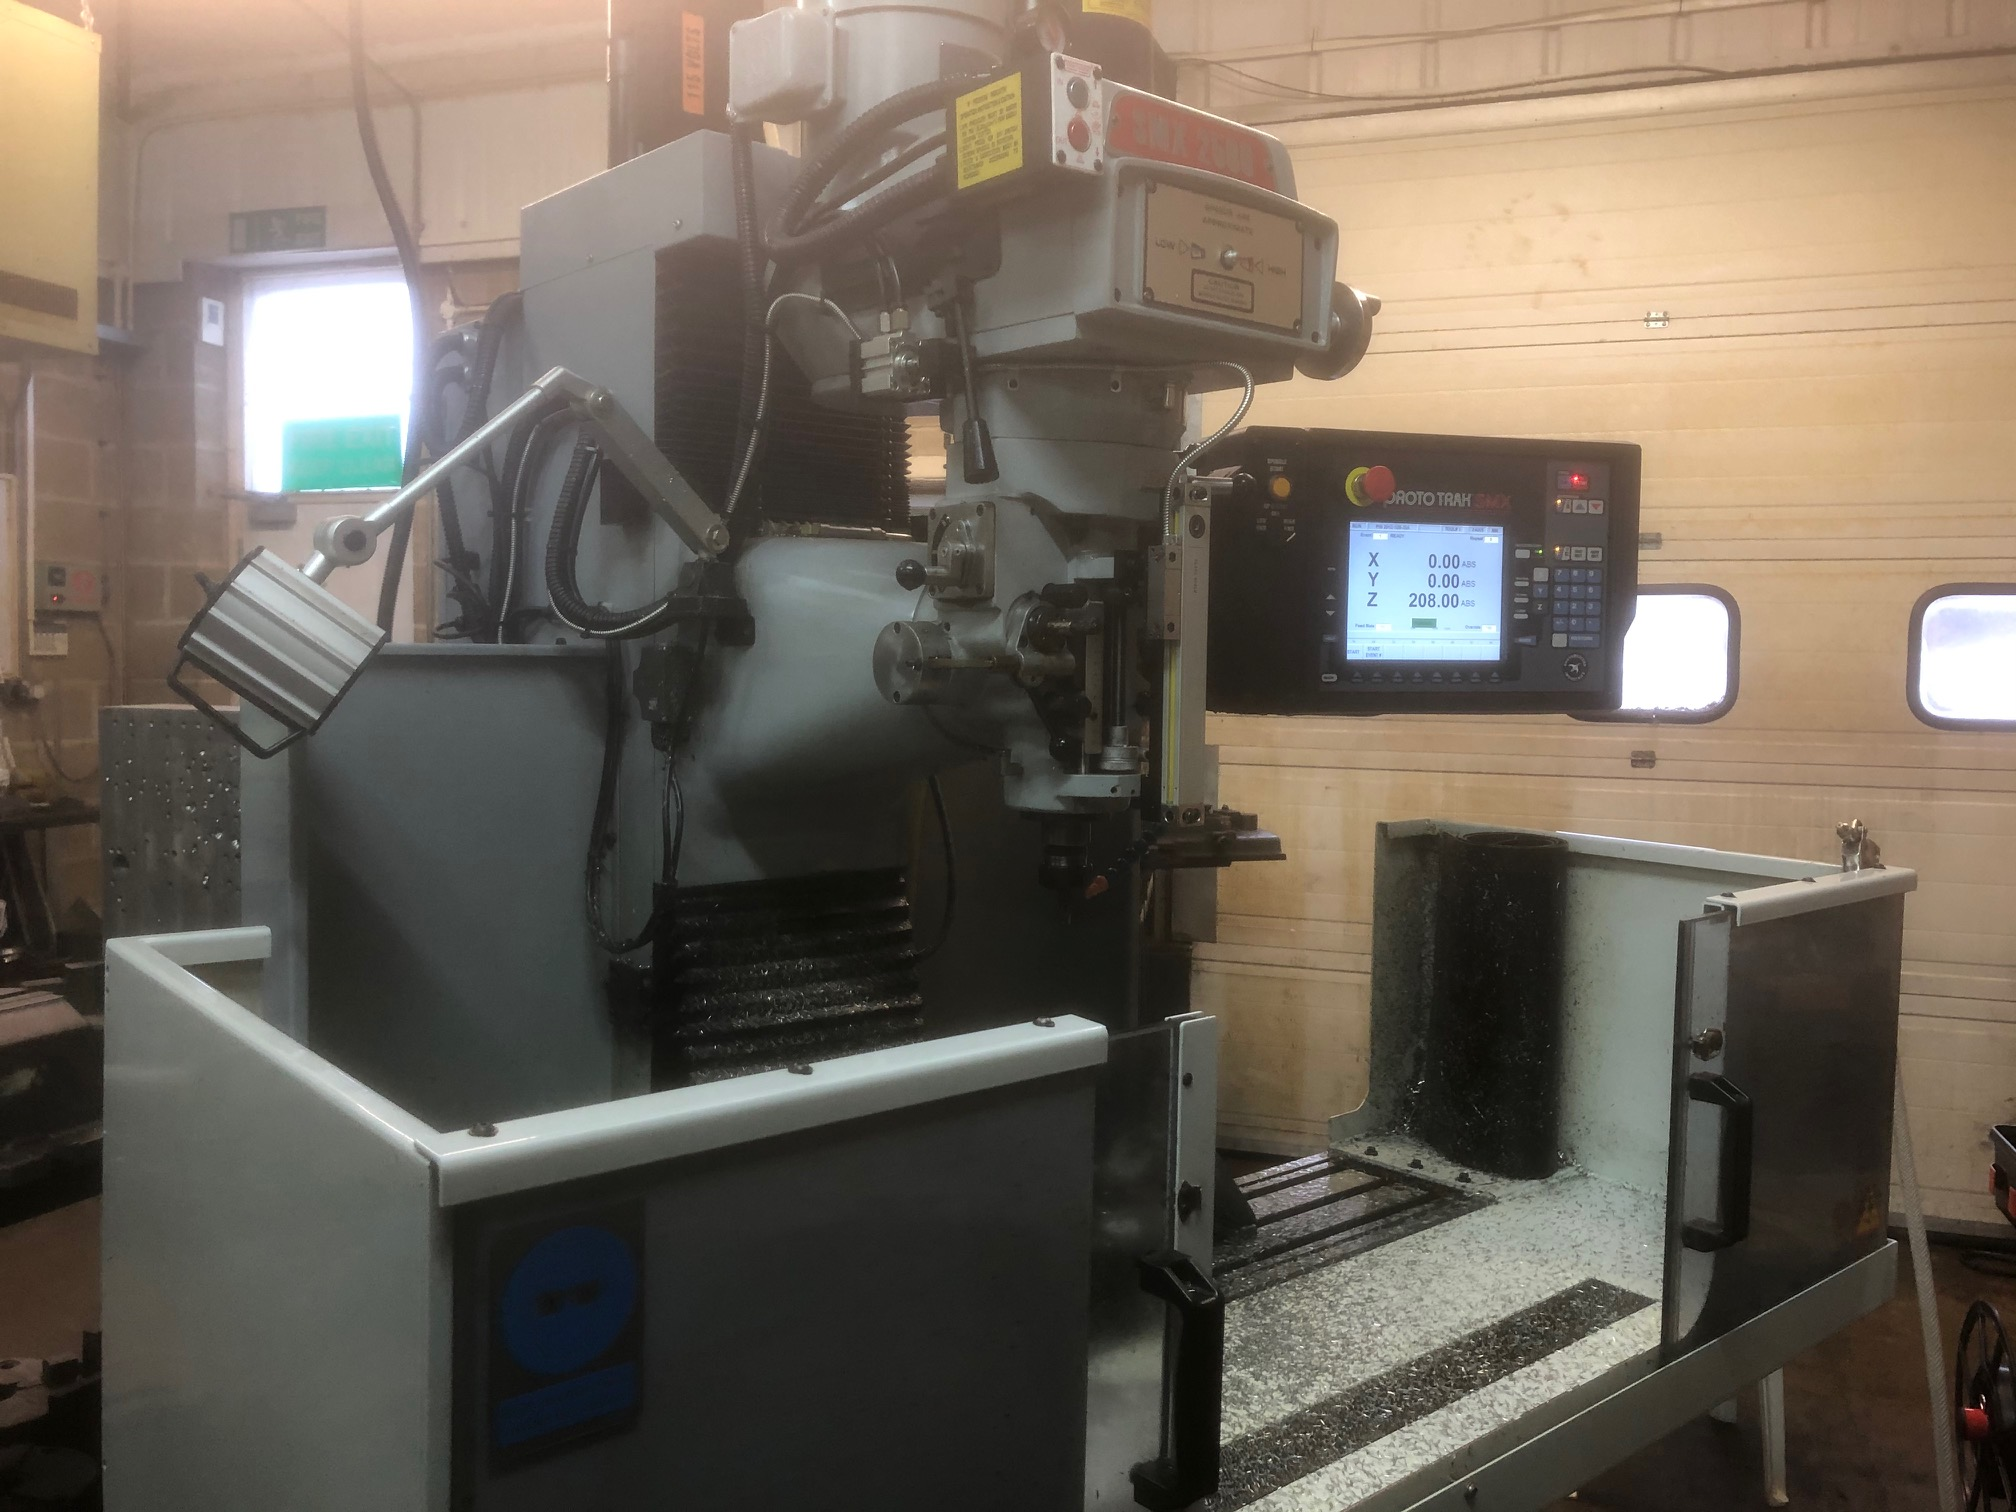 SMX 2500 Bed Mill machine from Fort Precision